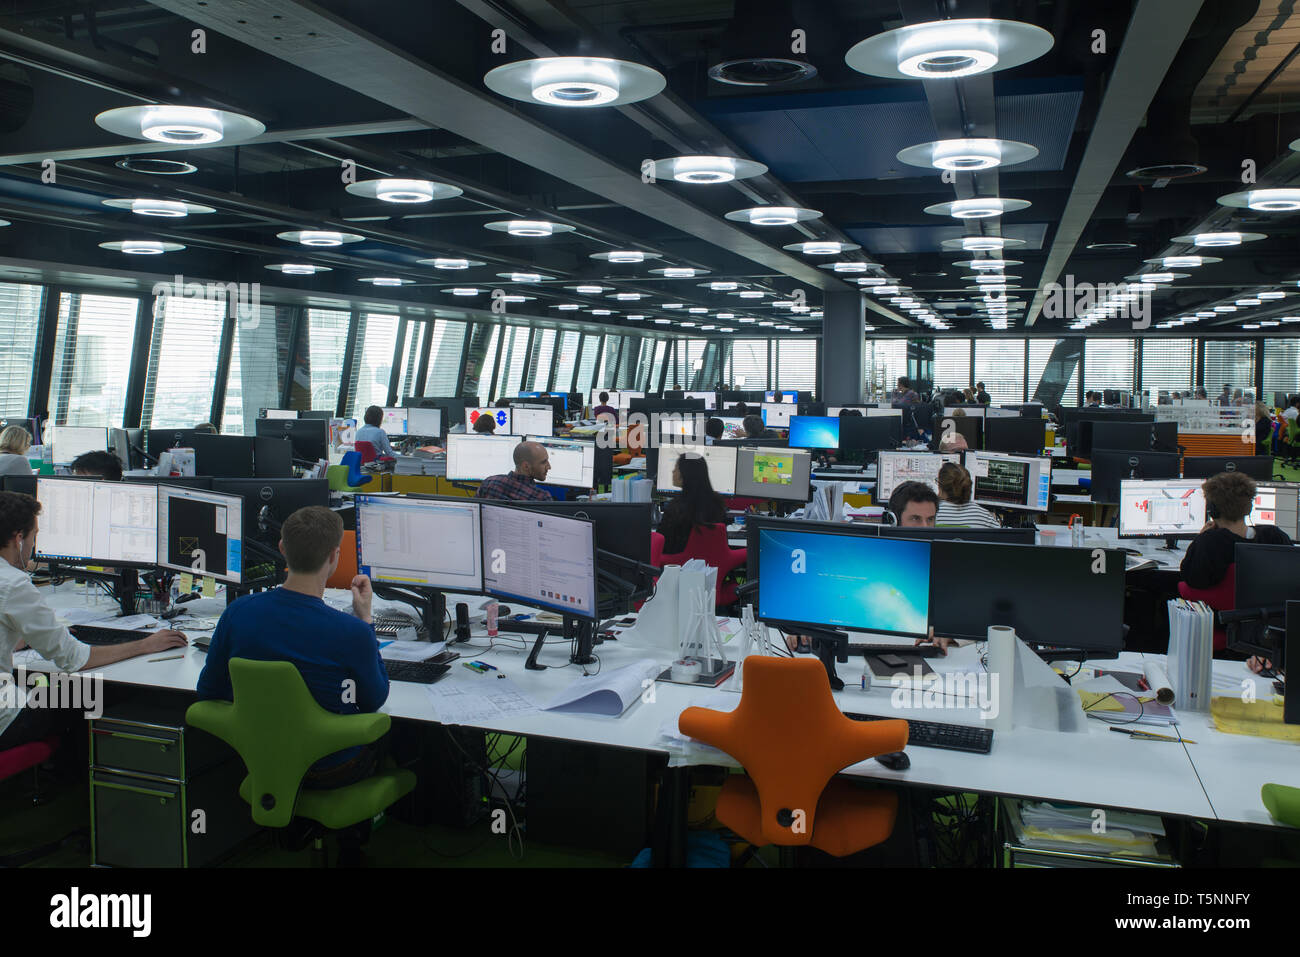 Architecture firm 'Rogers Stirk Harbour + Partners' offices in the City of London in the Leadenhall building nicknamed the Cheesegrater. - Stock Image